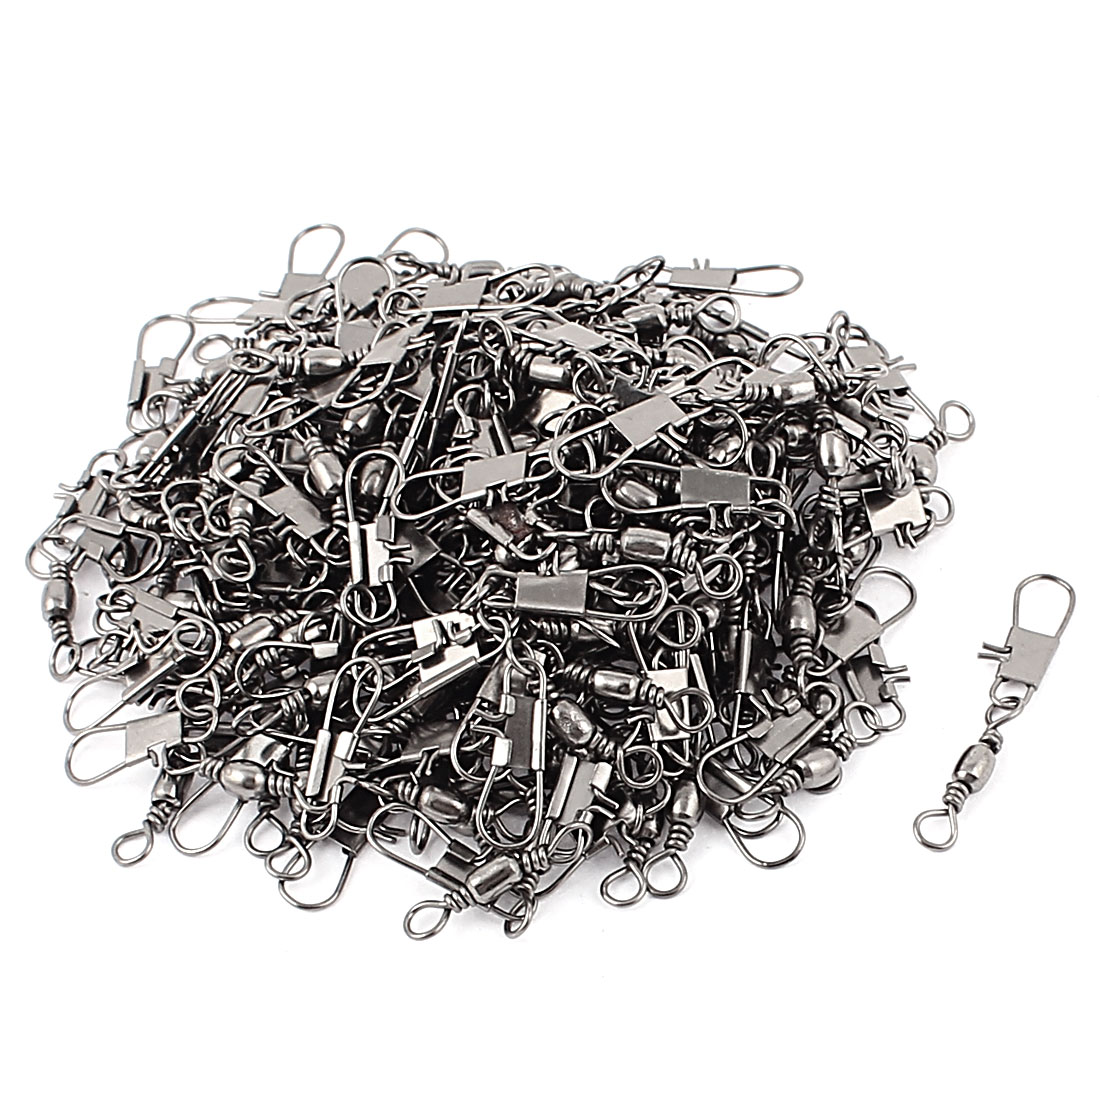 170Pcs Dark Gray Metal Fishing Line to Hook Shank Swivel Connectors B9#